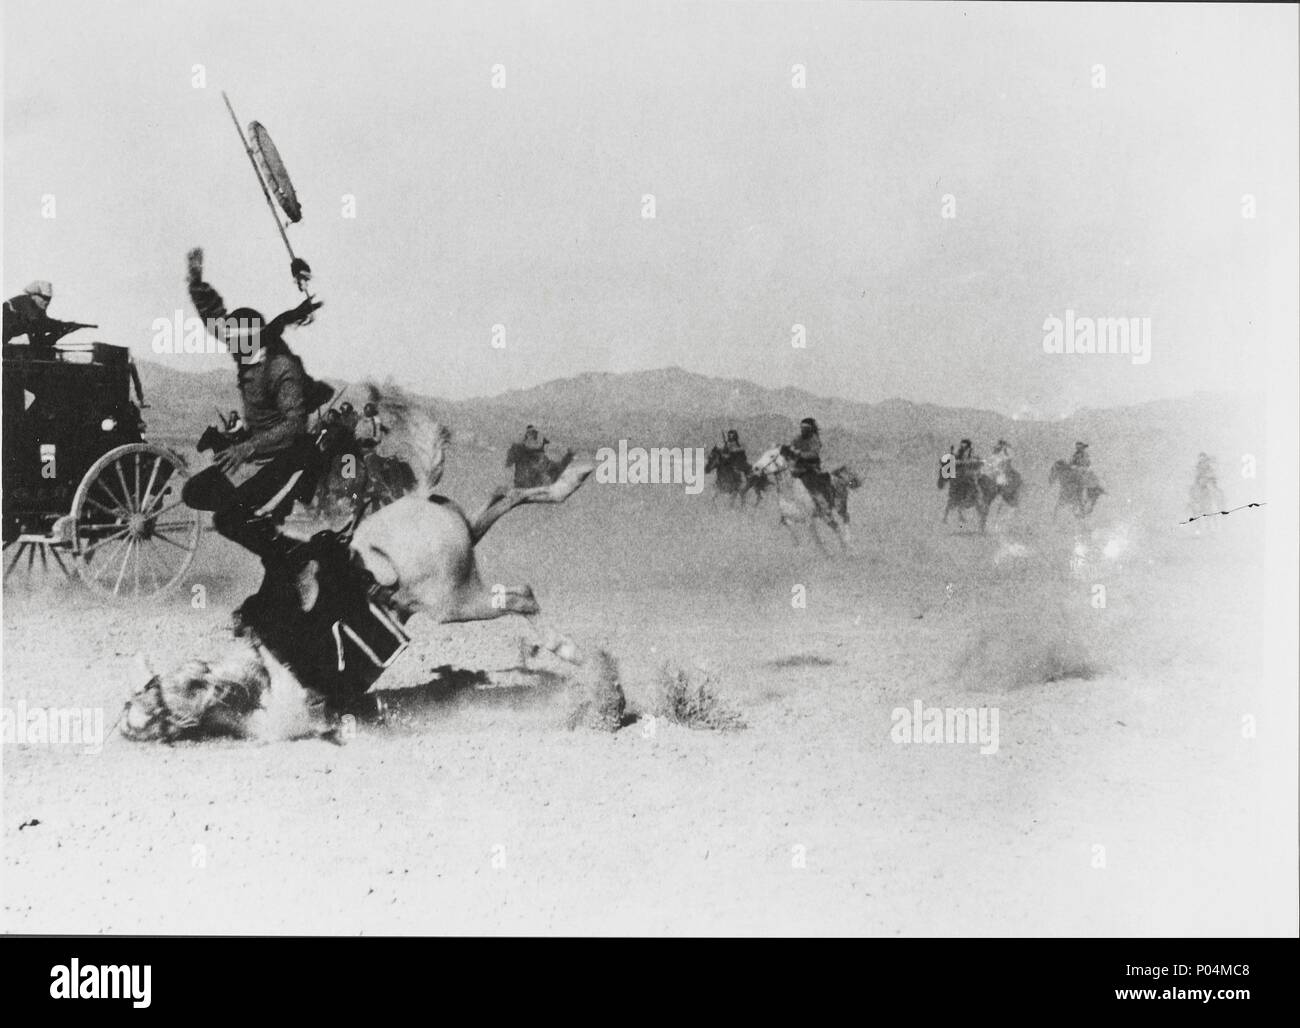 Original Film Title: STAGECOACH.  English Title: STAGECOACH.  Film Director: JOHN FORD.  Year: 1939. Credit: UNITED ARTISTS / Album Stock Photo